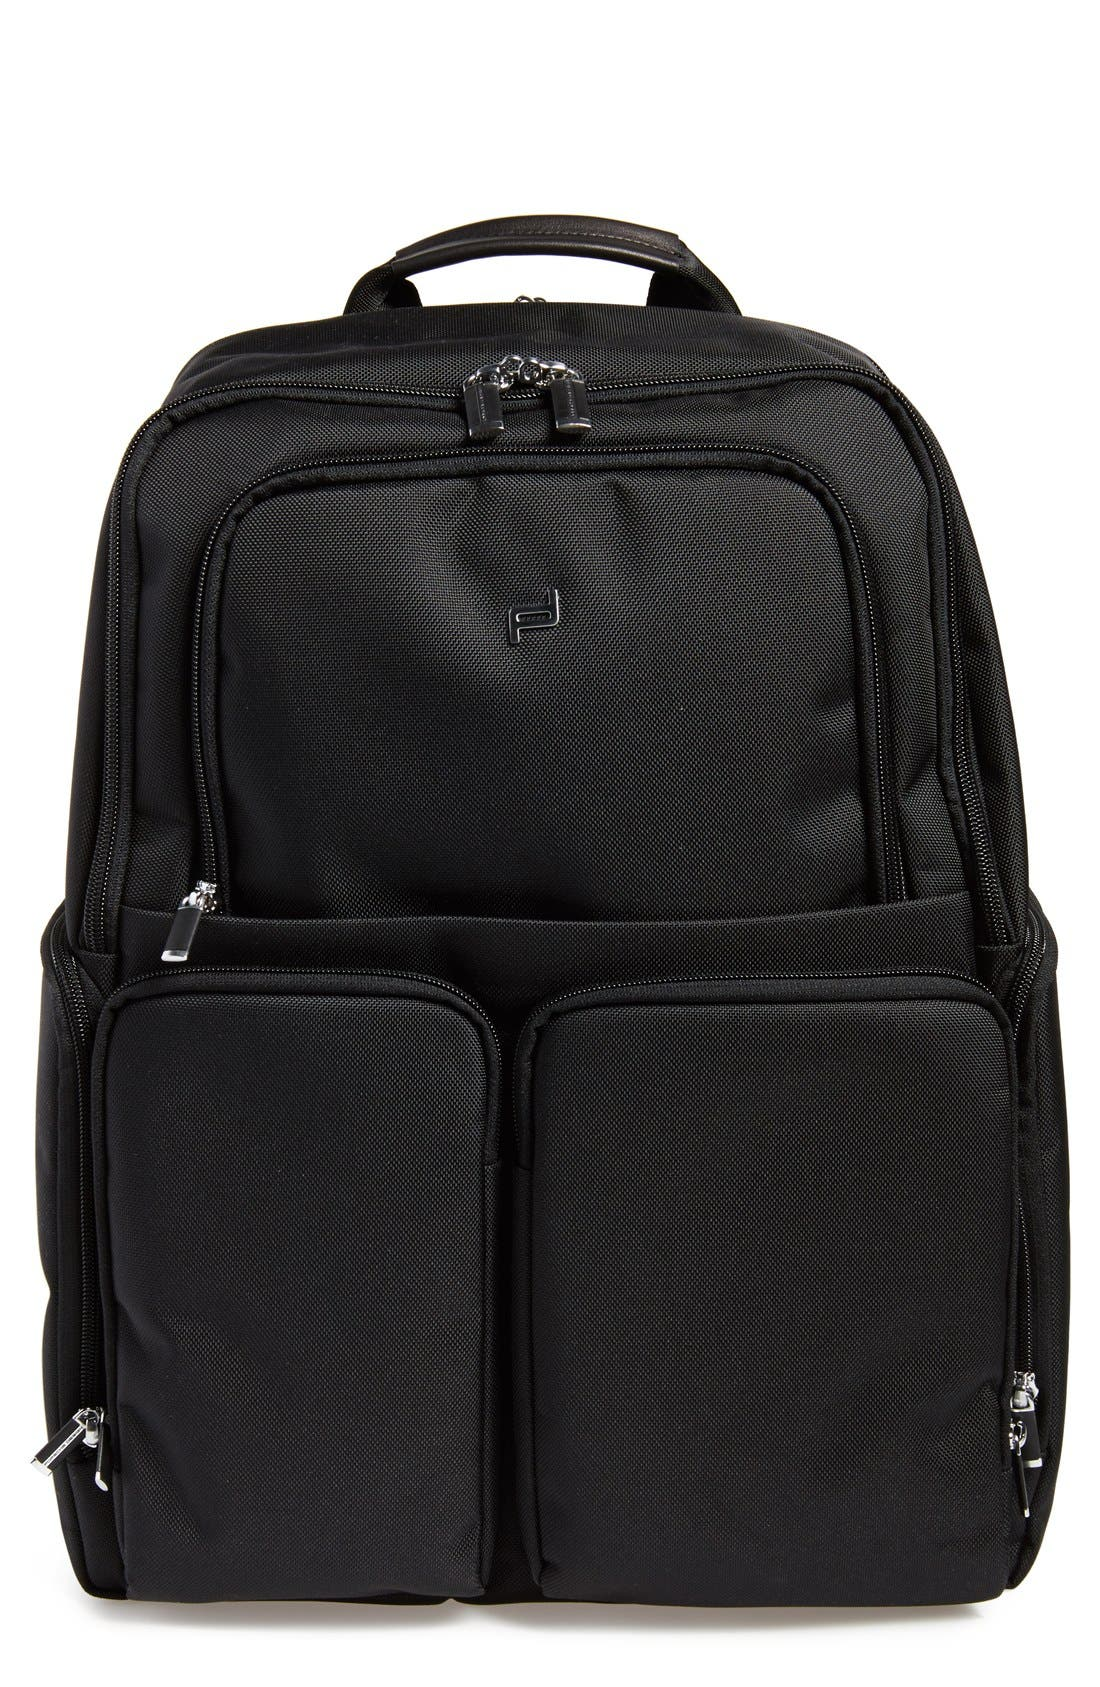 'Roadster 3.0' Backpack,                         Main,                         color, 001